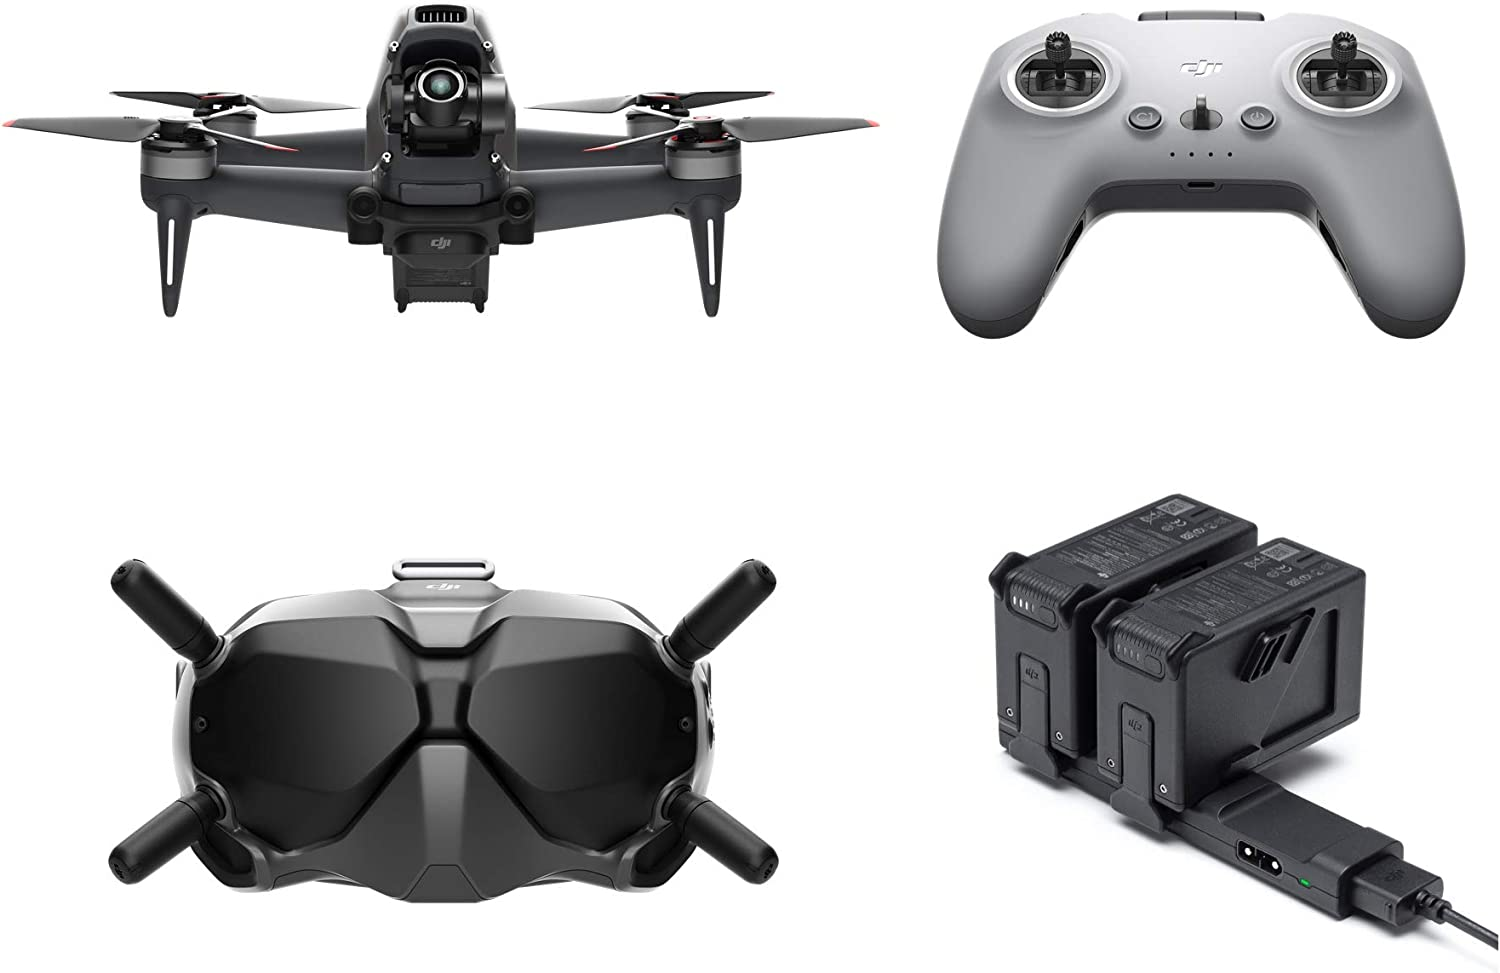 DJI FPV Combo w/Fly More Kit (2 More Batteries & 1 Charging hub) - First-Person View Drone Quadcopter UAV w/ 4K Camera, Flight Mode, Super-Wide 150° FOV, HD Low-Latency Transmission, E-Brake & Hover